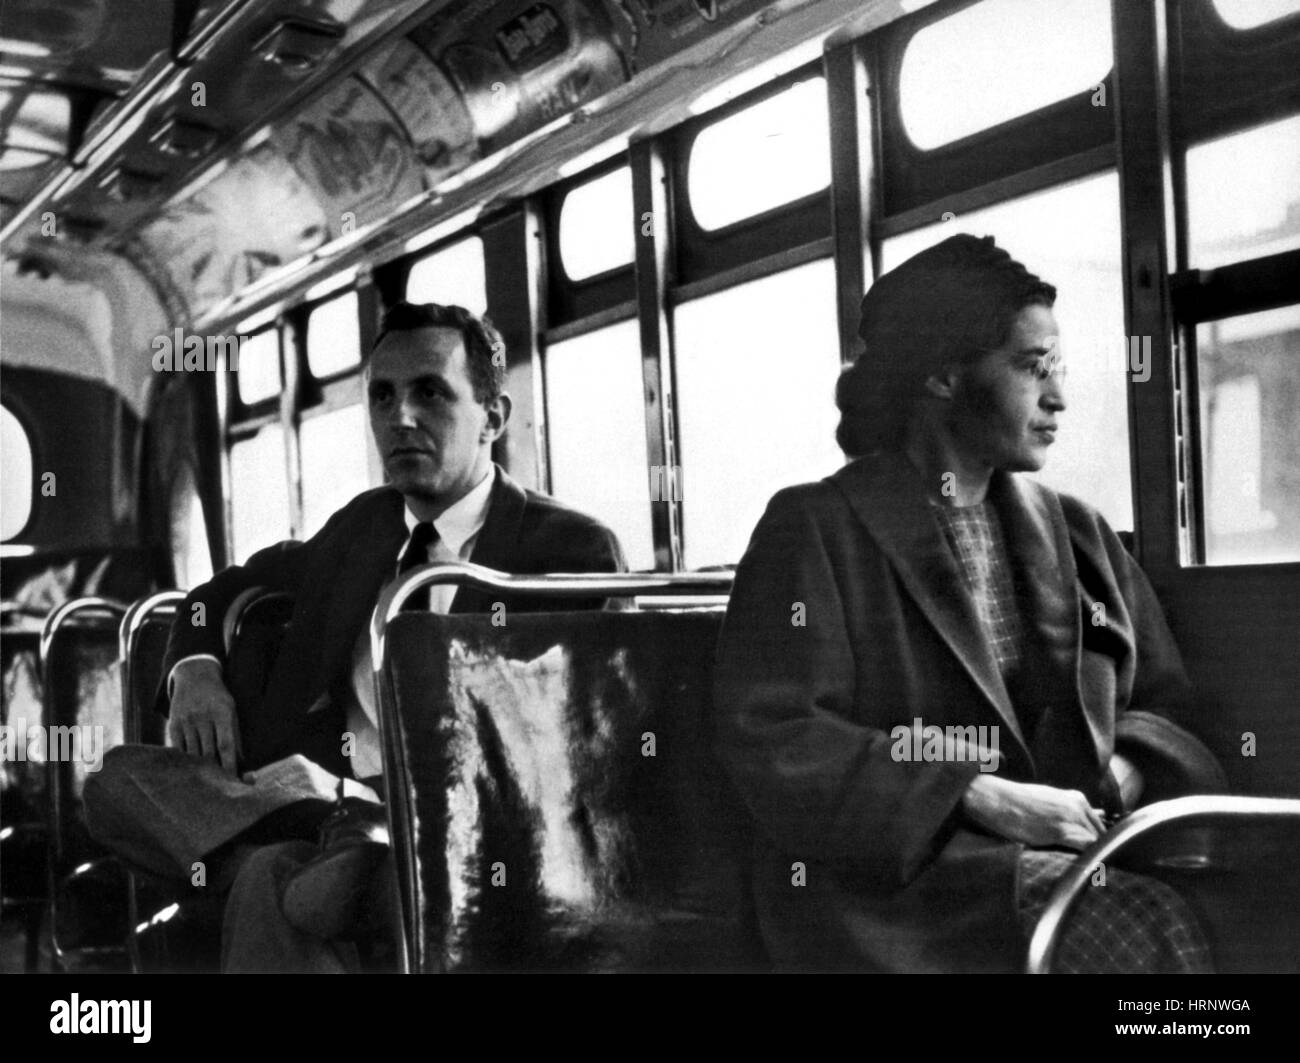 Rosa Parks, Civil Rights Activist - Stock Image